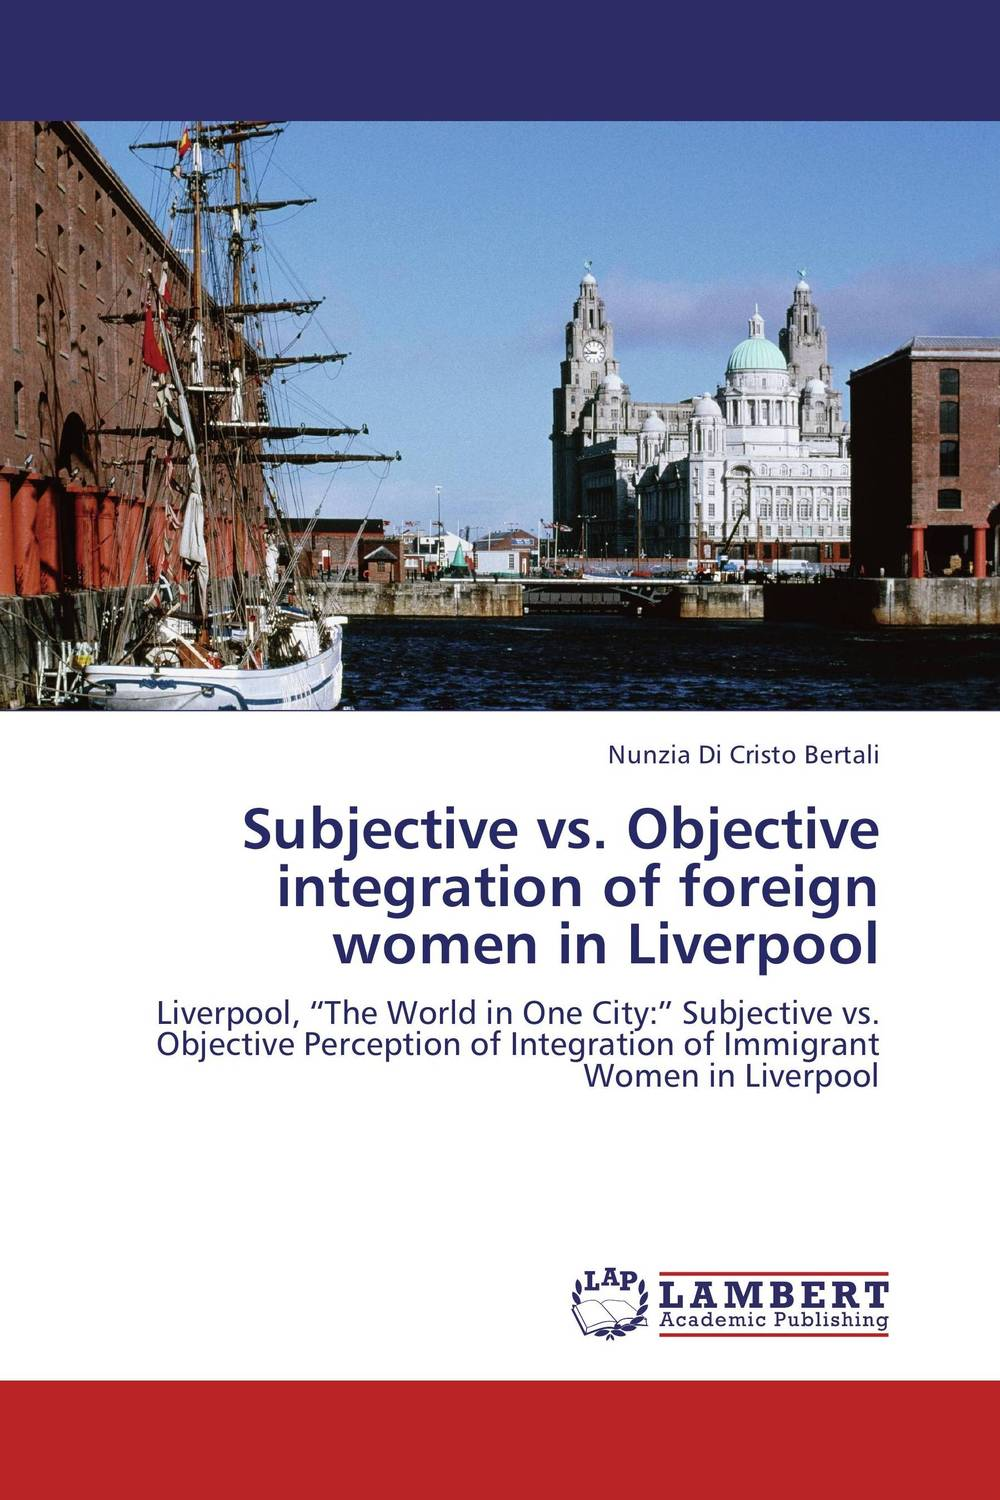 Subjective vs. Objective integration of foreign women in Liverpool evaluation of vitamin a supplements in ghanaian postpartum mothers